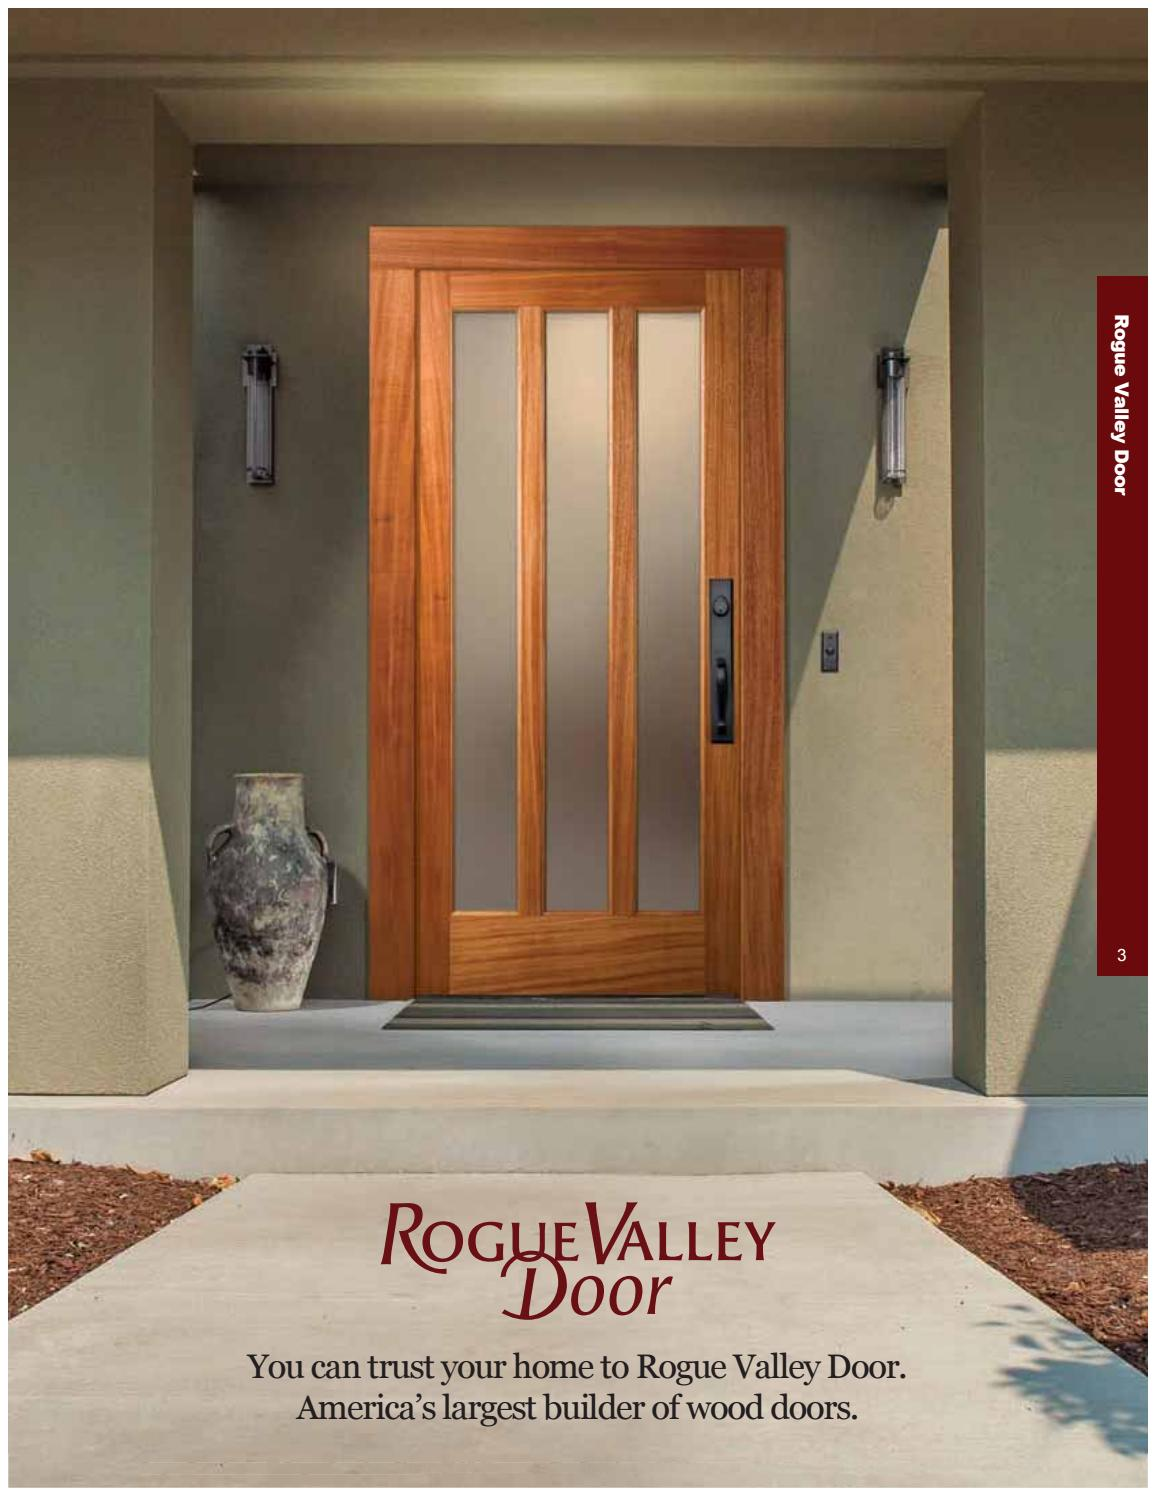 & Rogue Valley Door Catalog by Horner Millwork - issuu